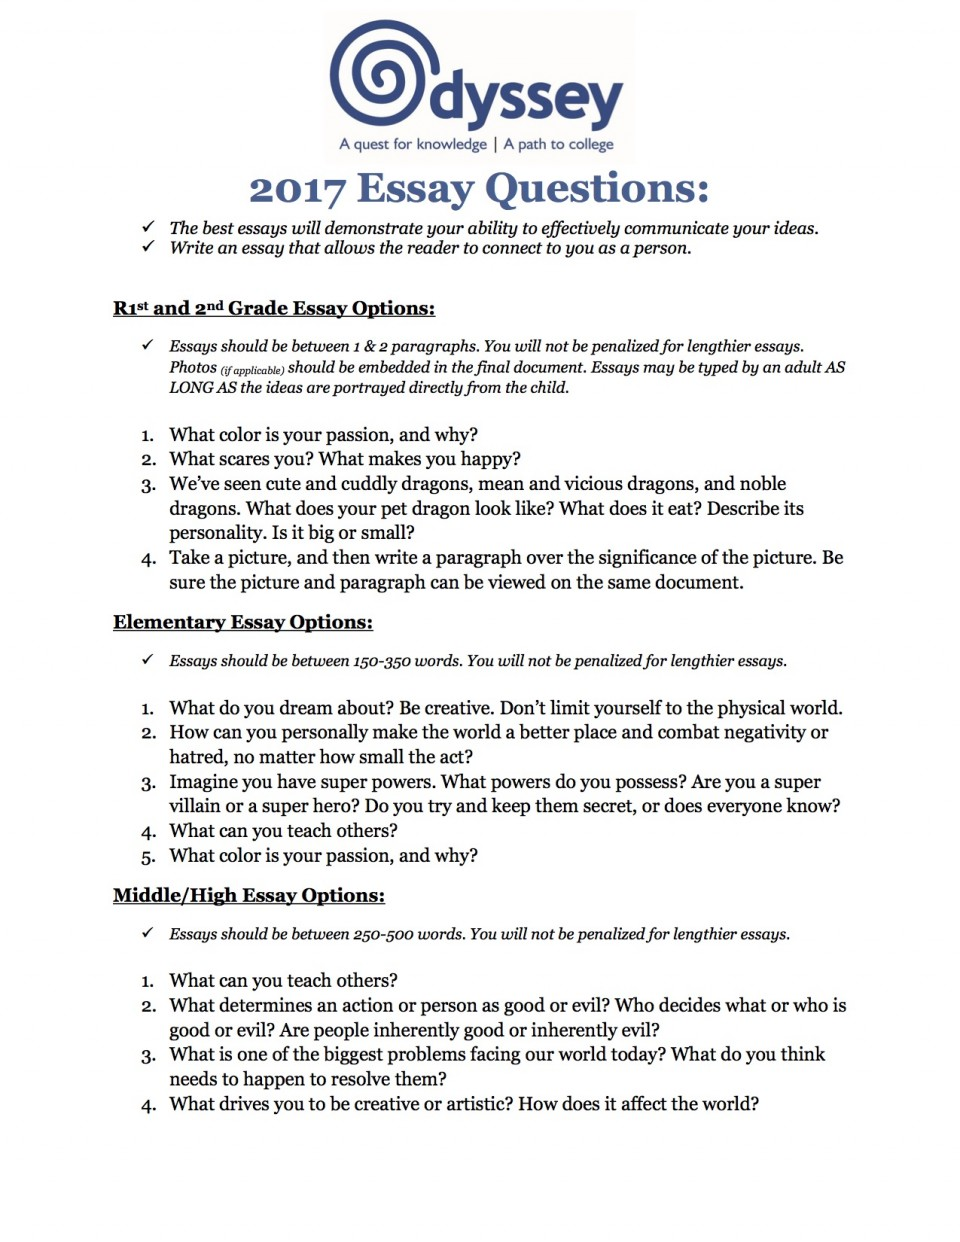 002 Odyssey Essay Topics 5829f1d2c75f9a7c5588b1c6 Proposed20essay20topics202017 Amazing Prompt Prompts 960